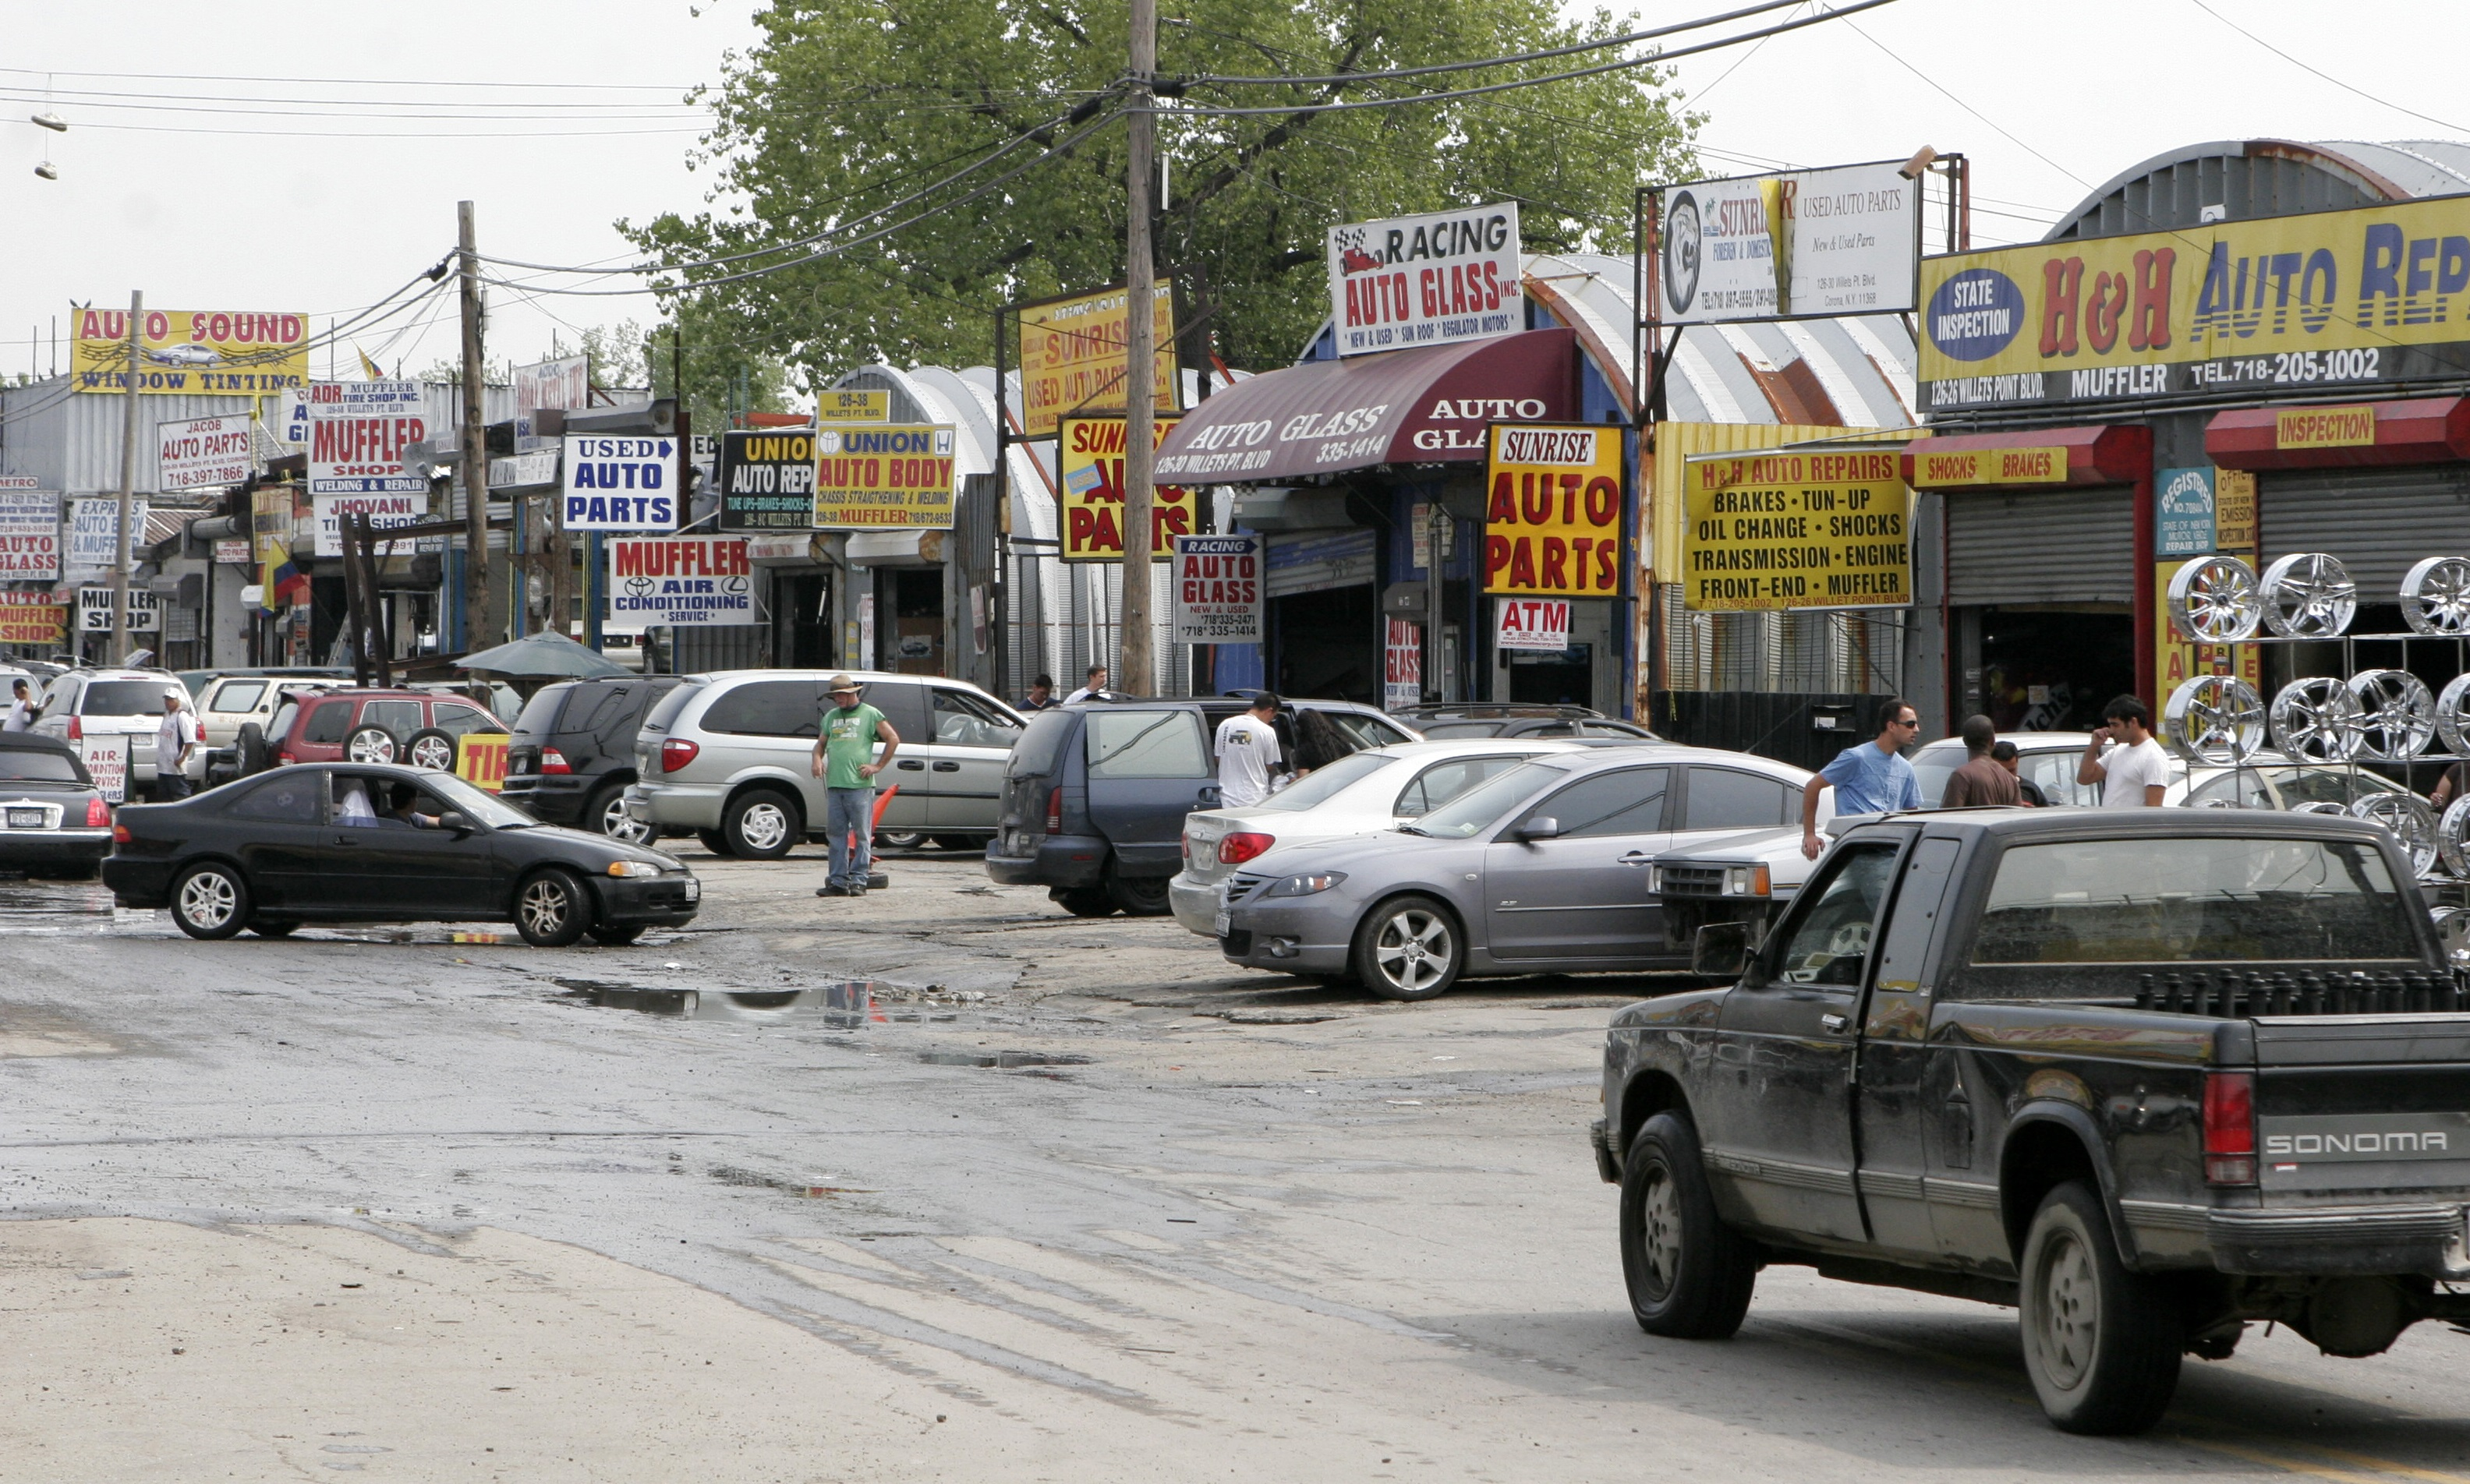 Willets Point auto shop owners settle suit with city, moving to Bronx: report